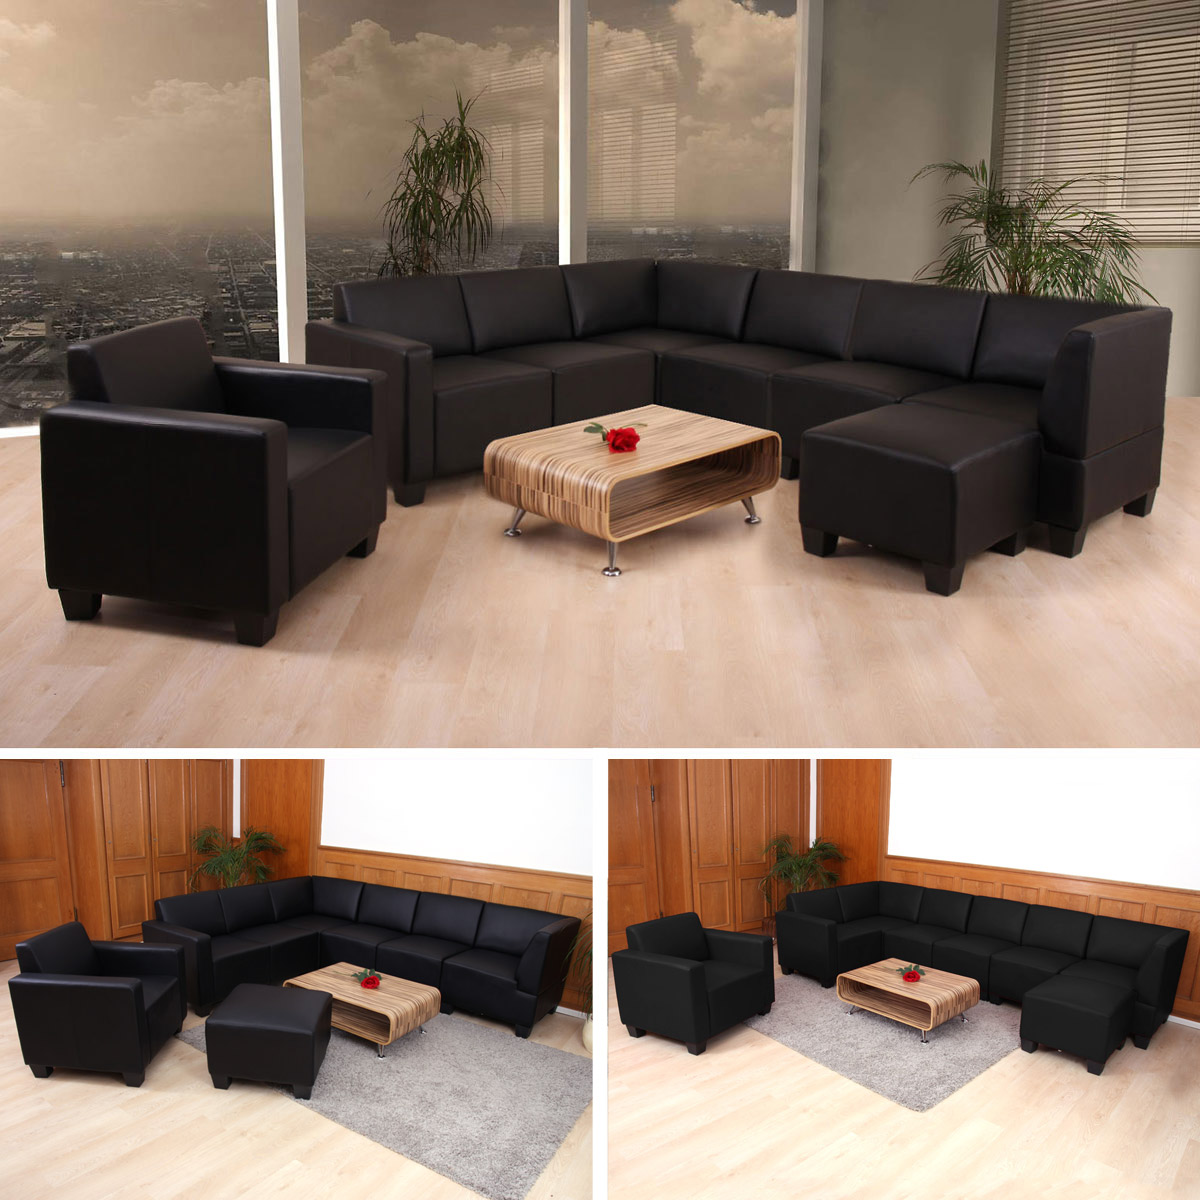 modular sofa system couch garnitur lyon 6 1 1 kunstleder schwarz. Black Bedroom Furniture Sets. Home Design Ideas